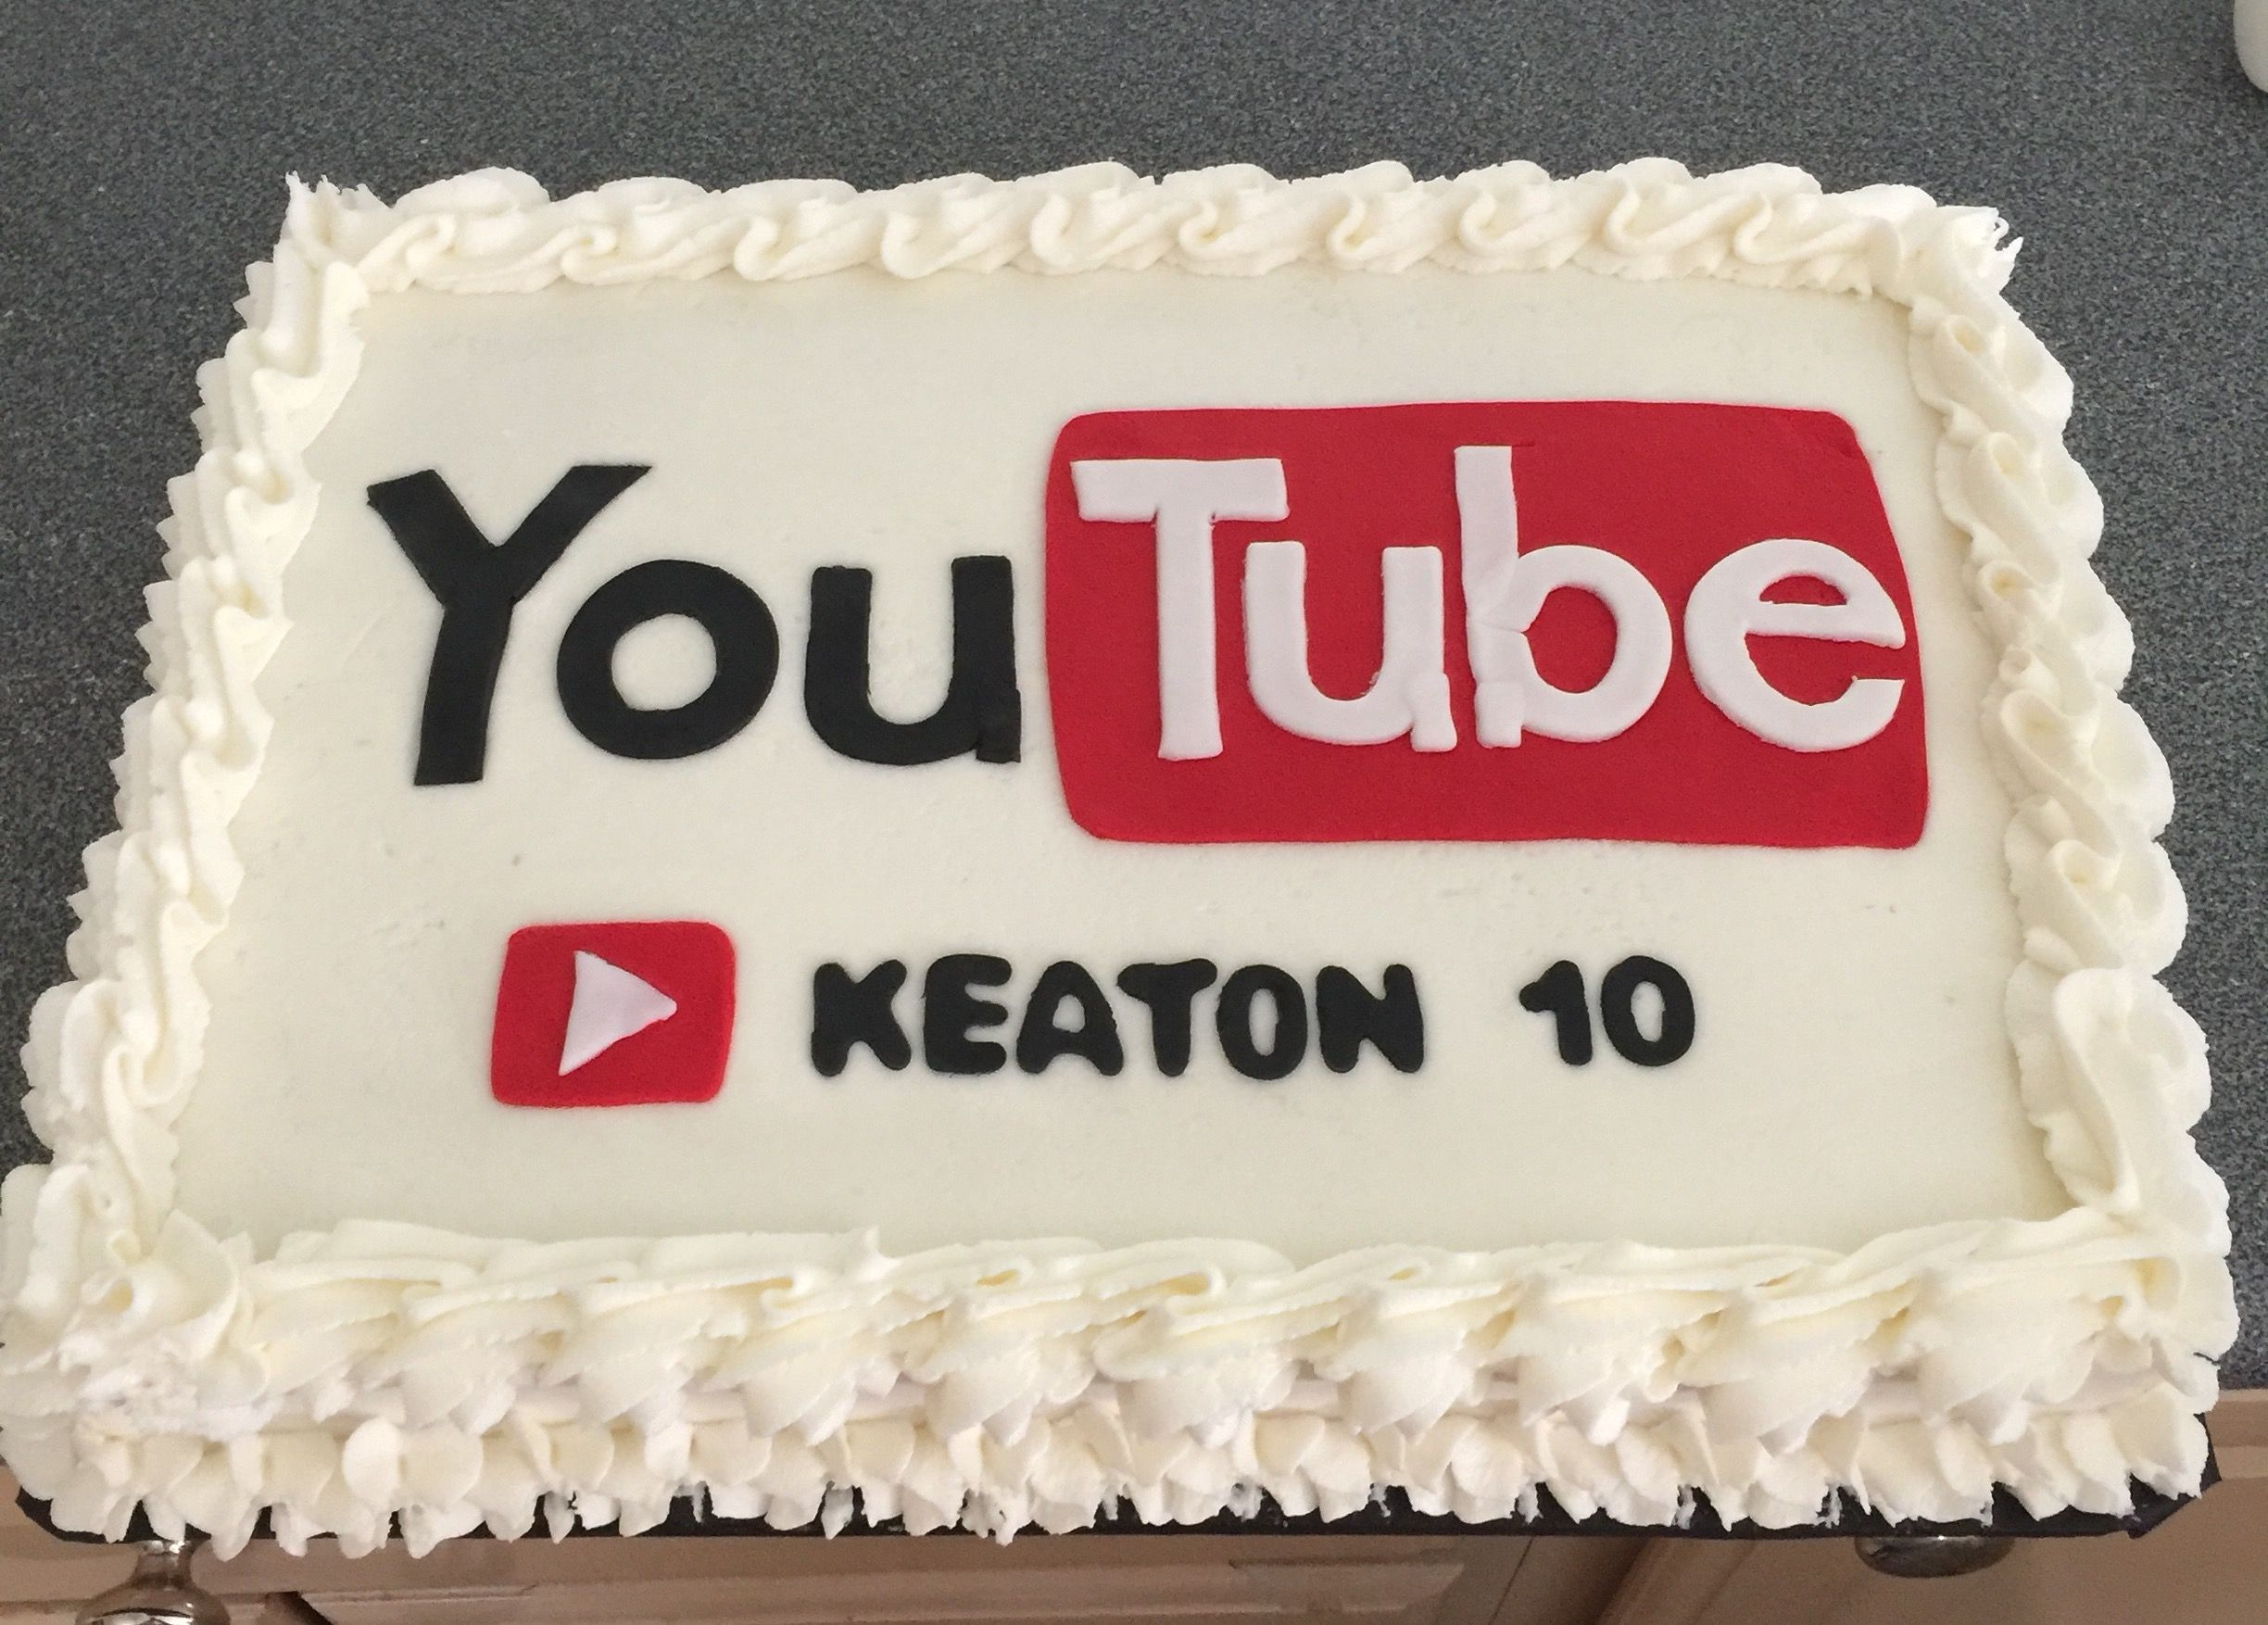 Swell You Tube Themed Cake By Dkscakes Com With Images Themed Funny Birthday Cards Online Unhofree Goldxyz